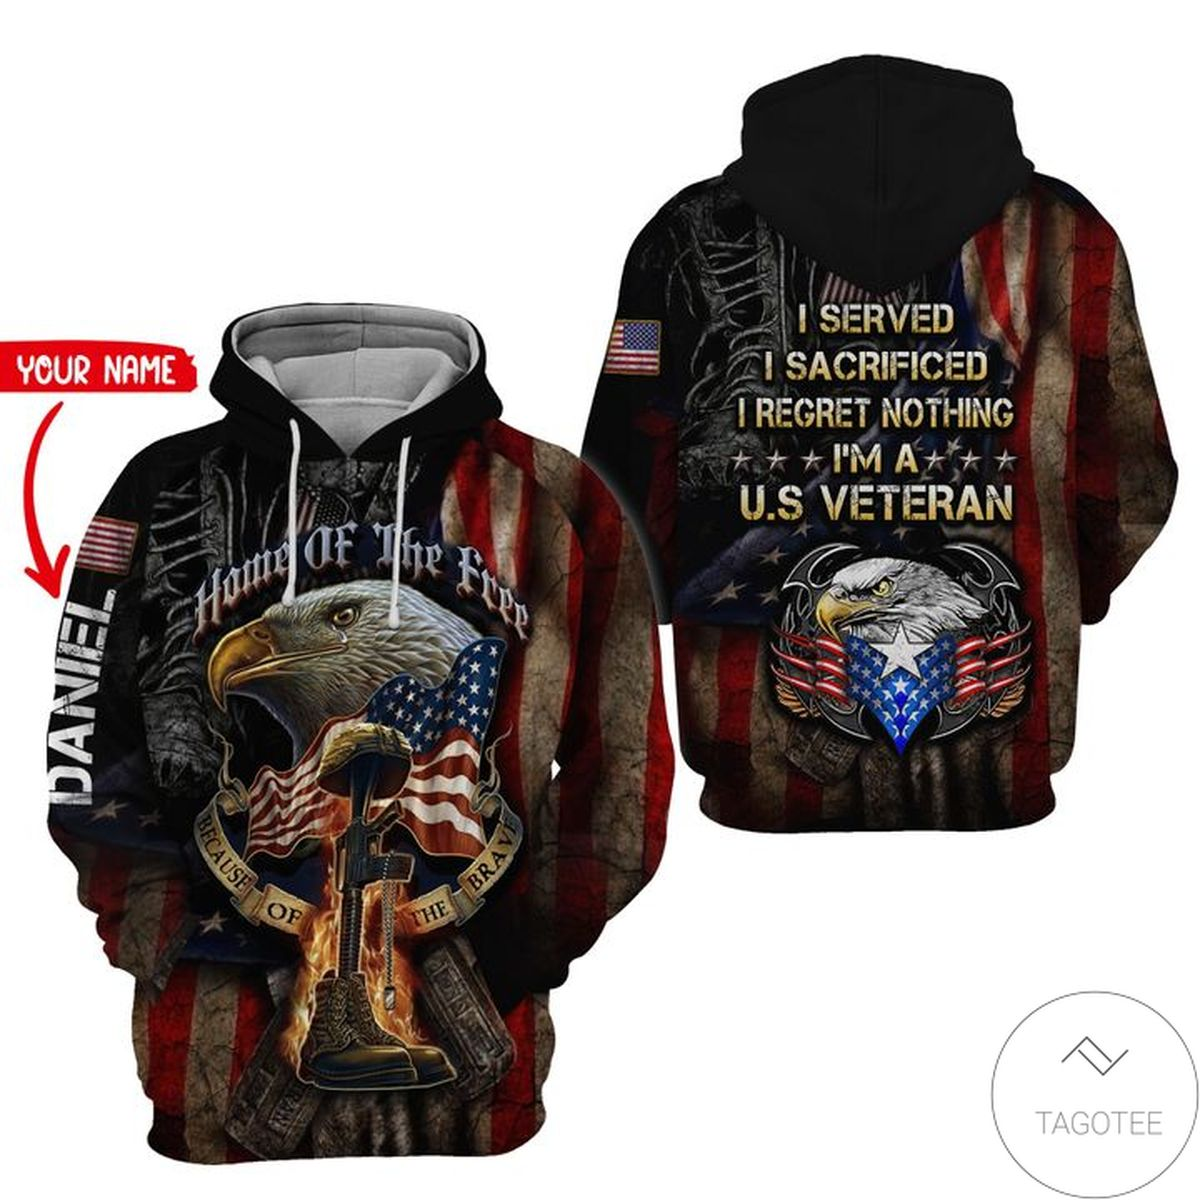 Excellent Personalized U.S. Army Veteran I Served I Sacrificed I Regret Nothing 3D Hoodie